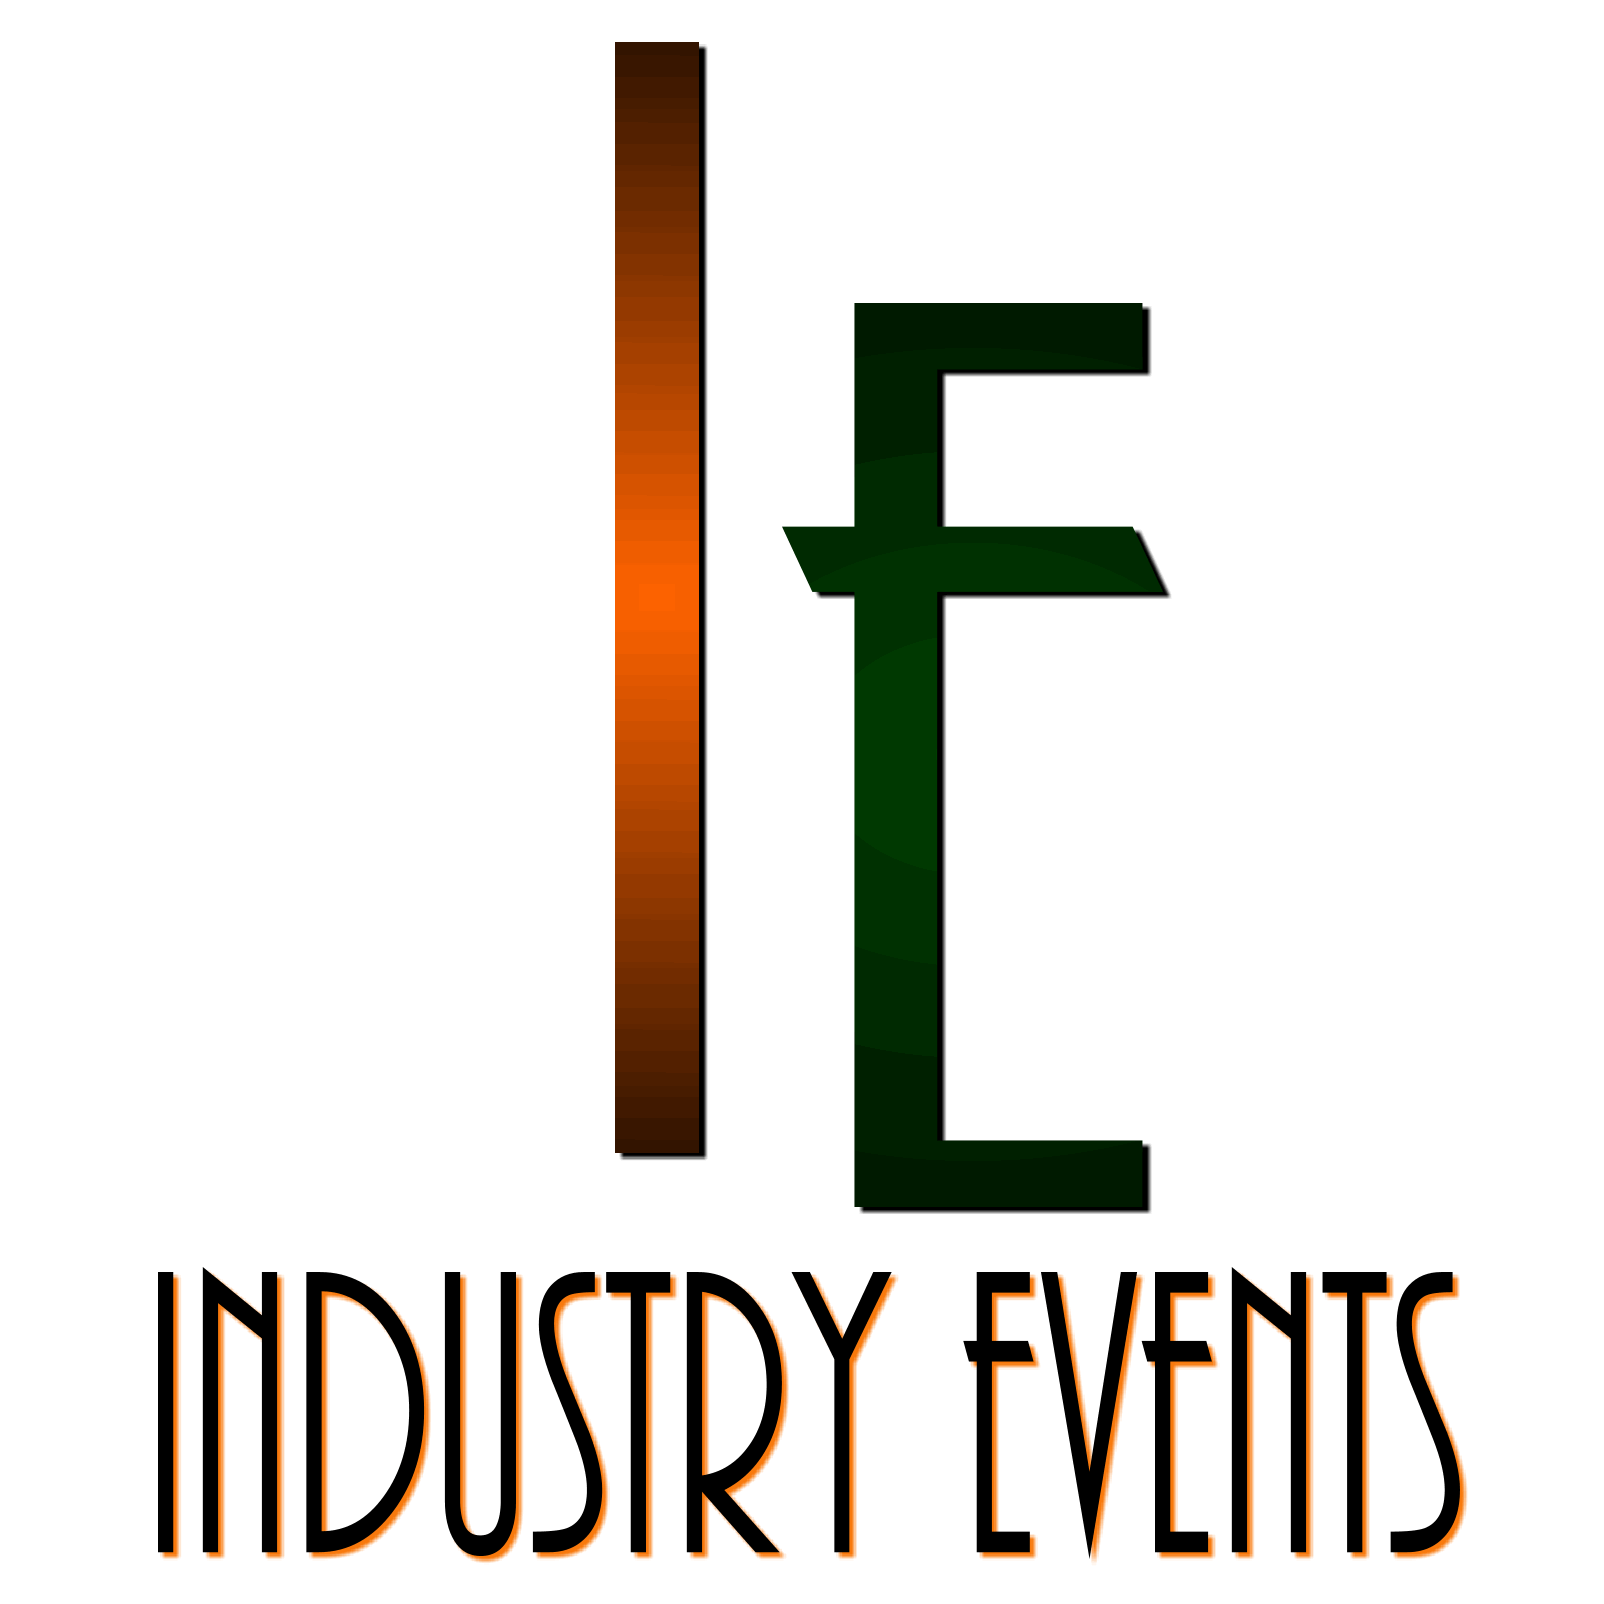 industryevents Logo